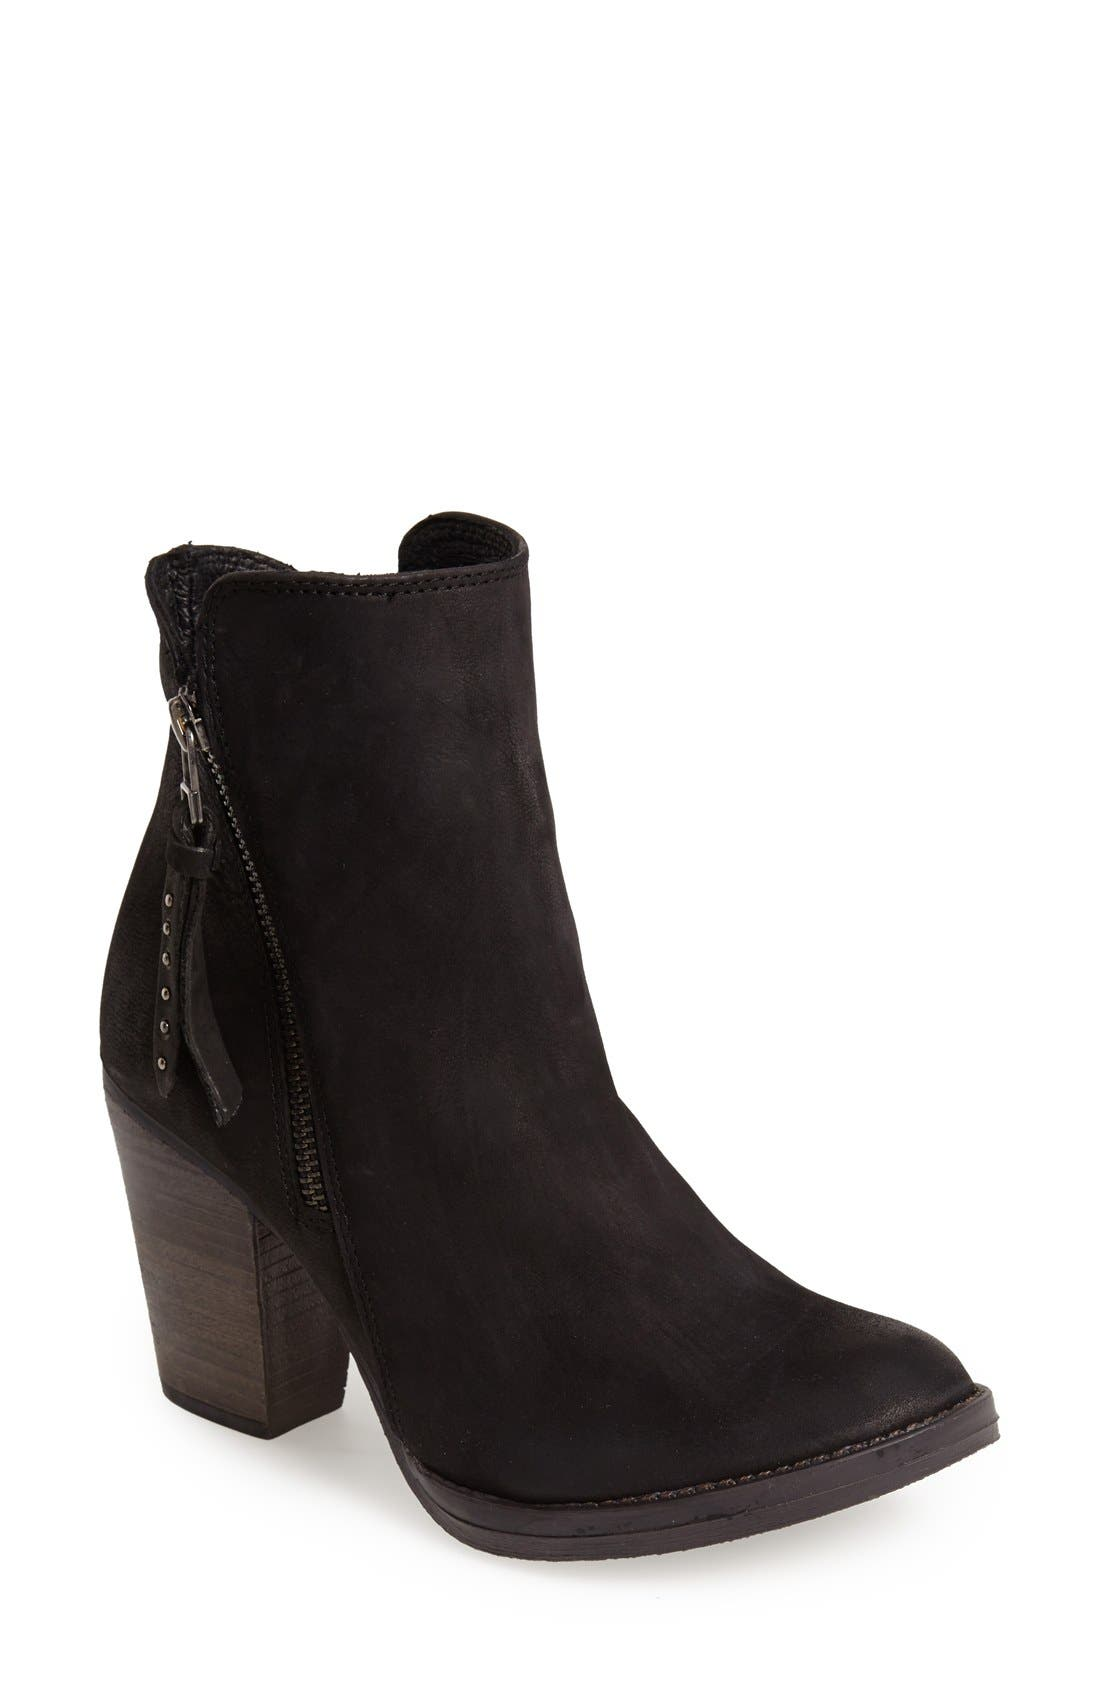 'Ryat' Leather Ankle Bootie,                             Main thumbnail 1, color,                             001